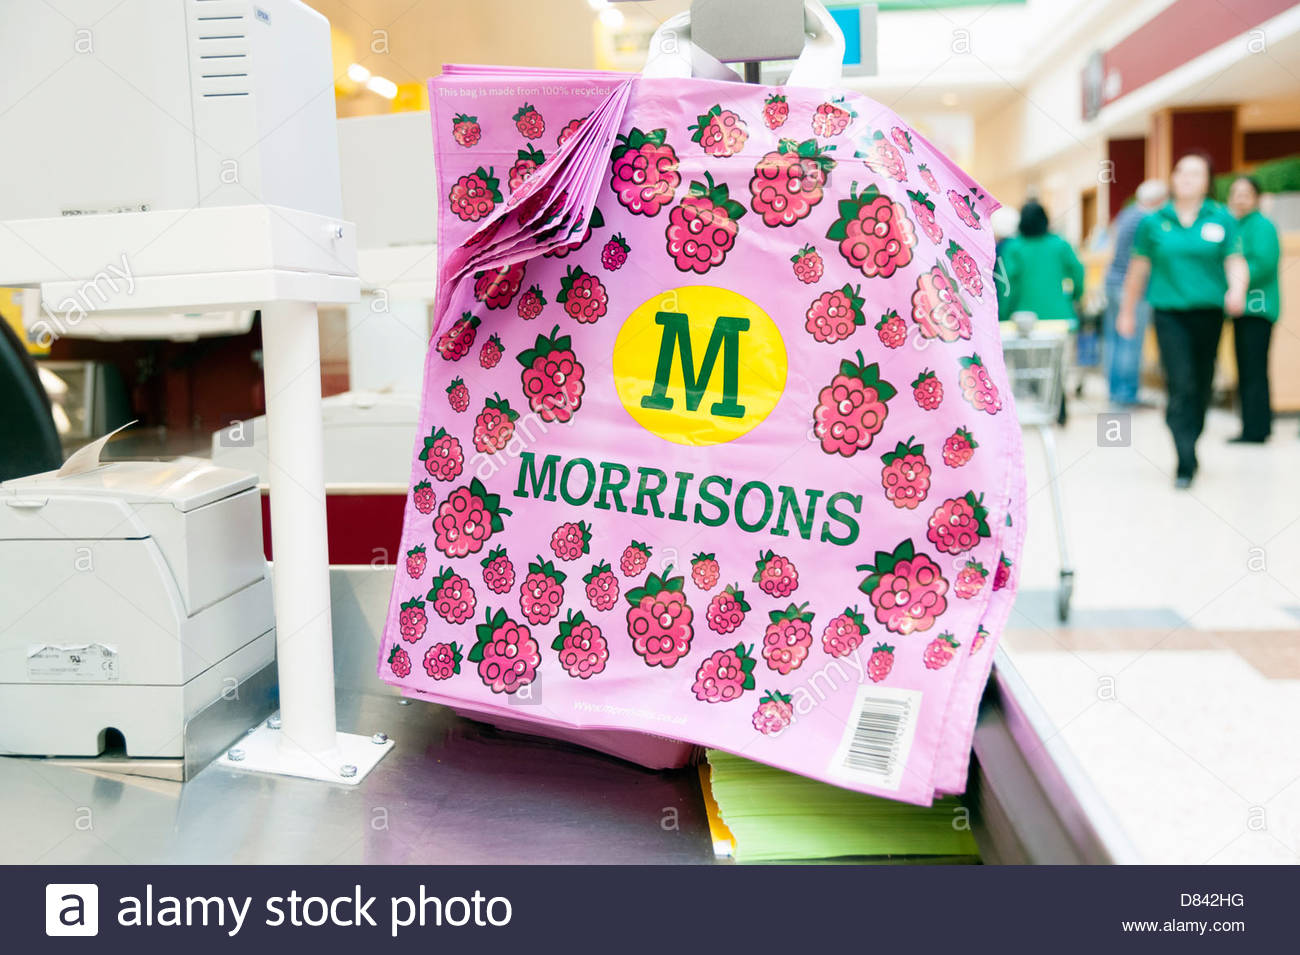 Re-useable bag in a Morrisons supermarket, UK. Stock Photo